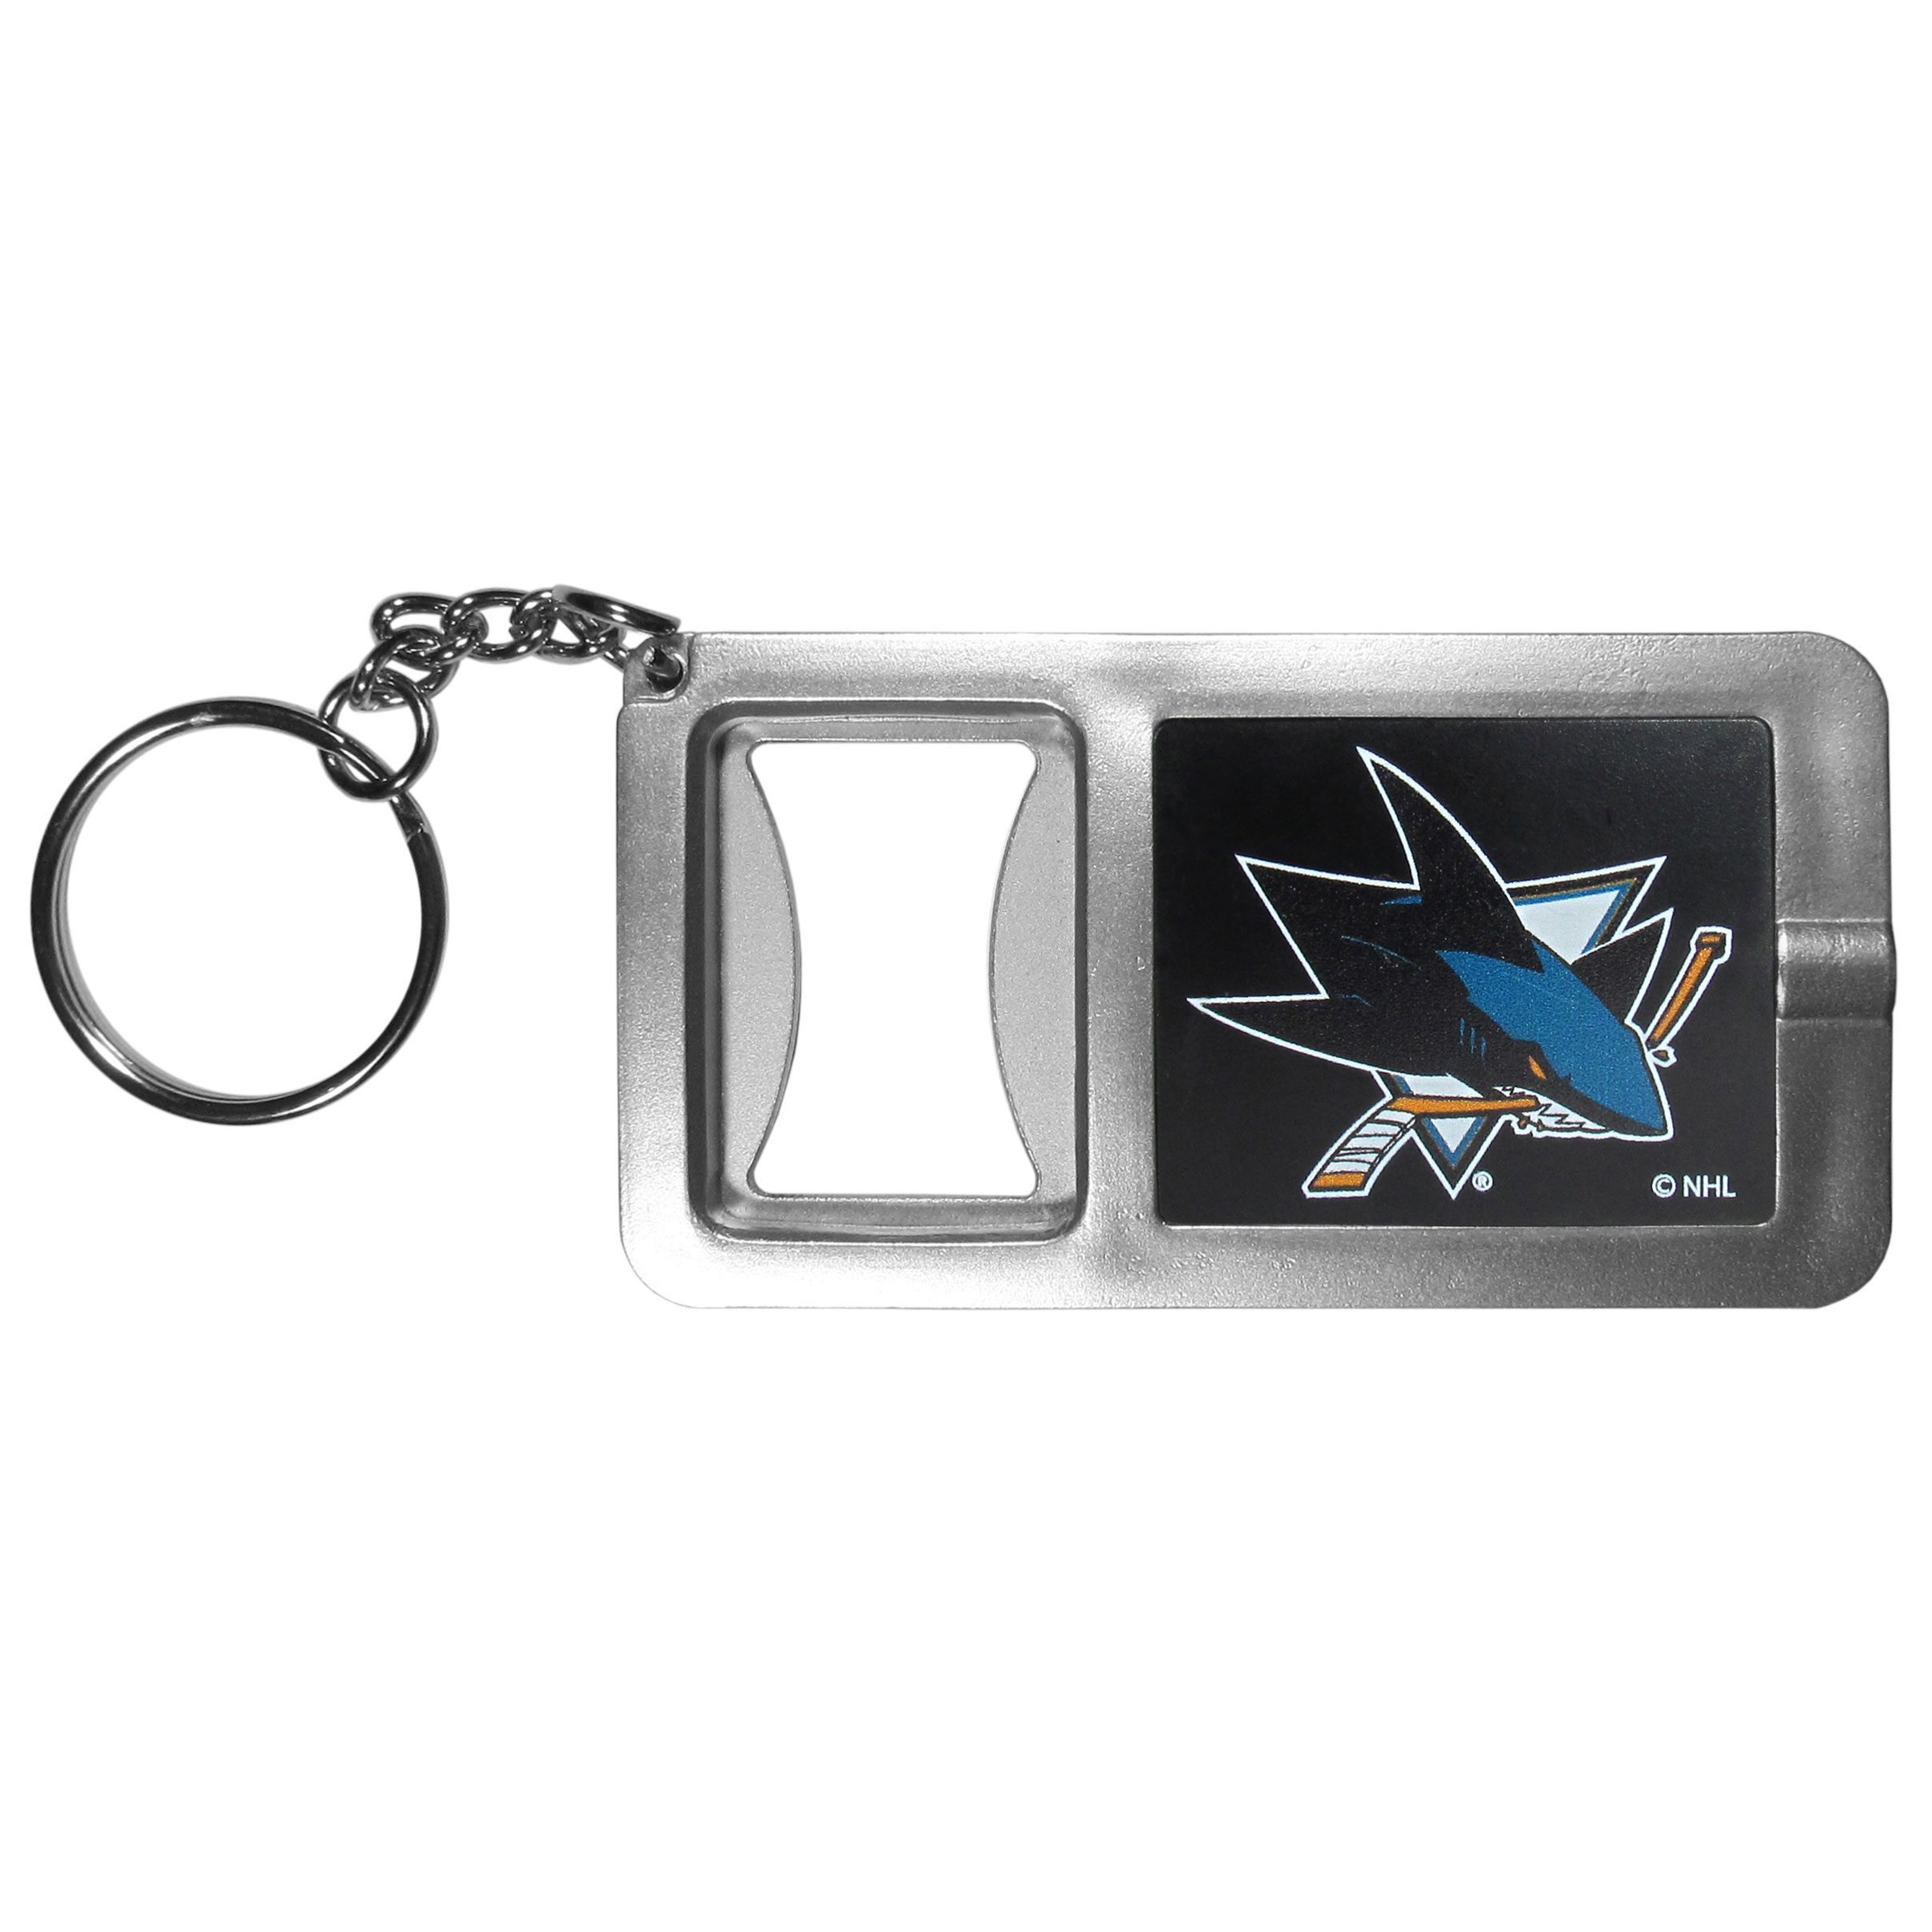 San Jose Sharks® Flashlight Key Chain with Bottle Opener - Never be without light with our San Jose Sharks® flashlight keychain that features a handy bottle opener feature. This versatile key chain is perfect for camping and travel and is a great way to show off your team pride!